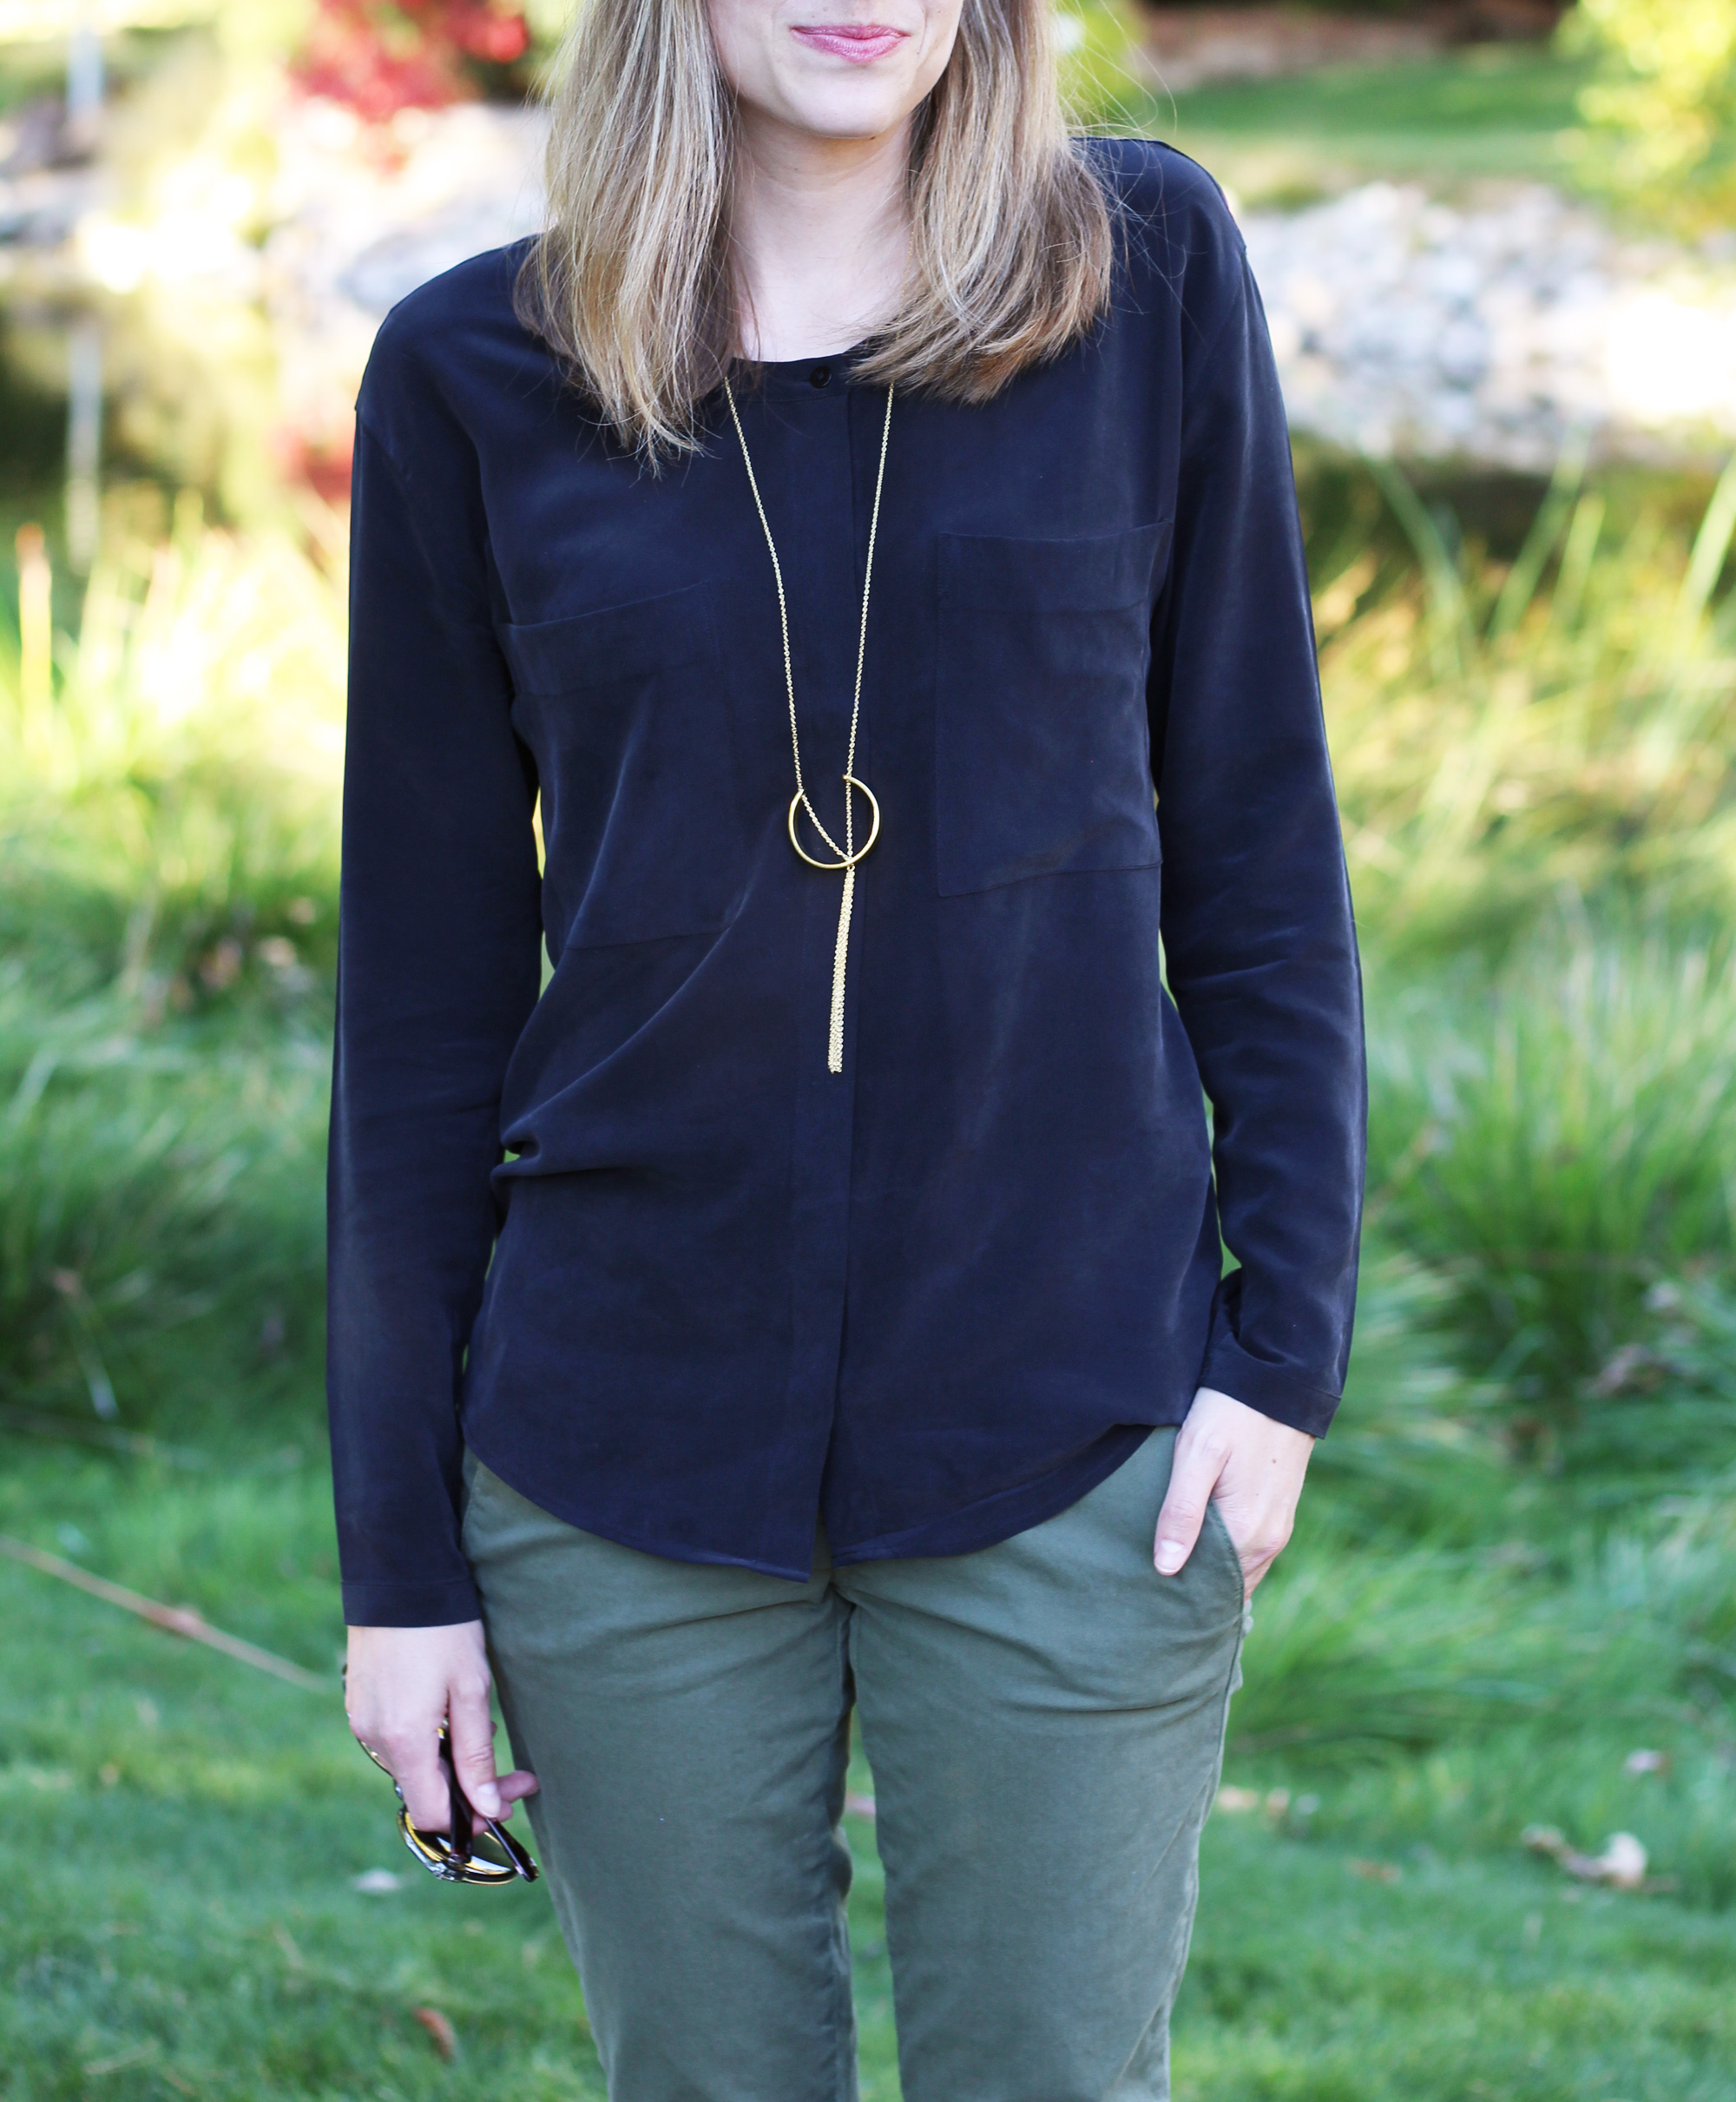 Black silk shirt outfit with pendant necklace and green pants — Cotton Cashmere Cat Hair